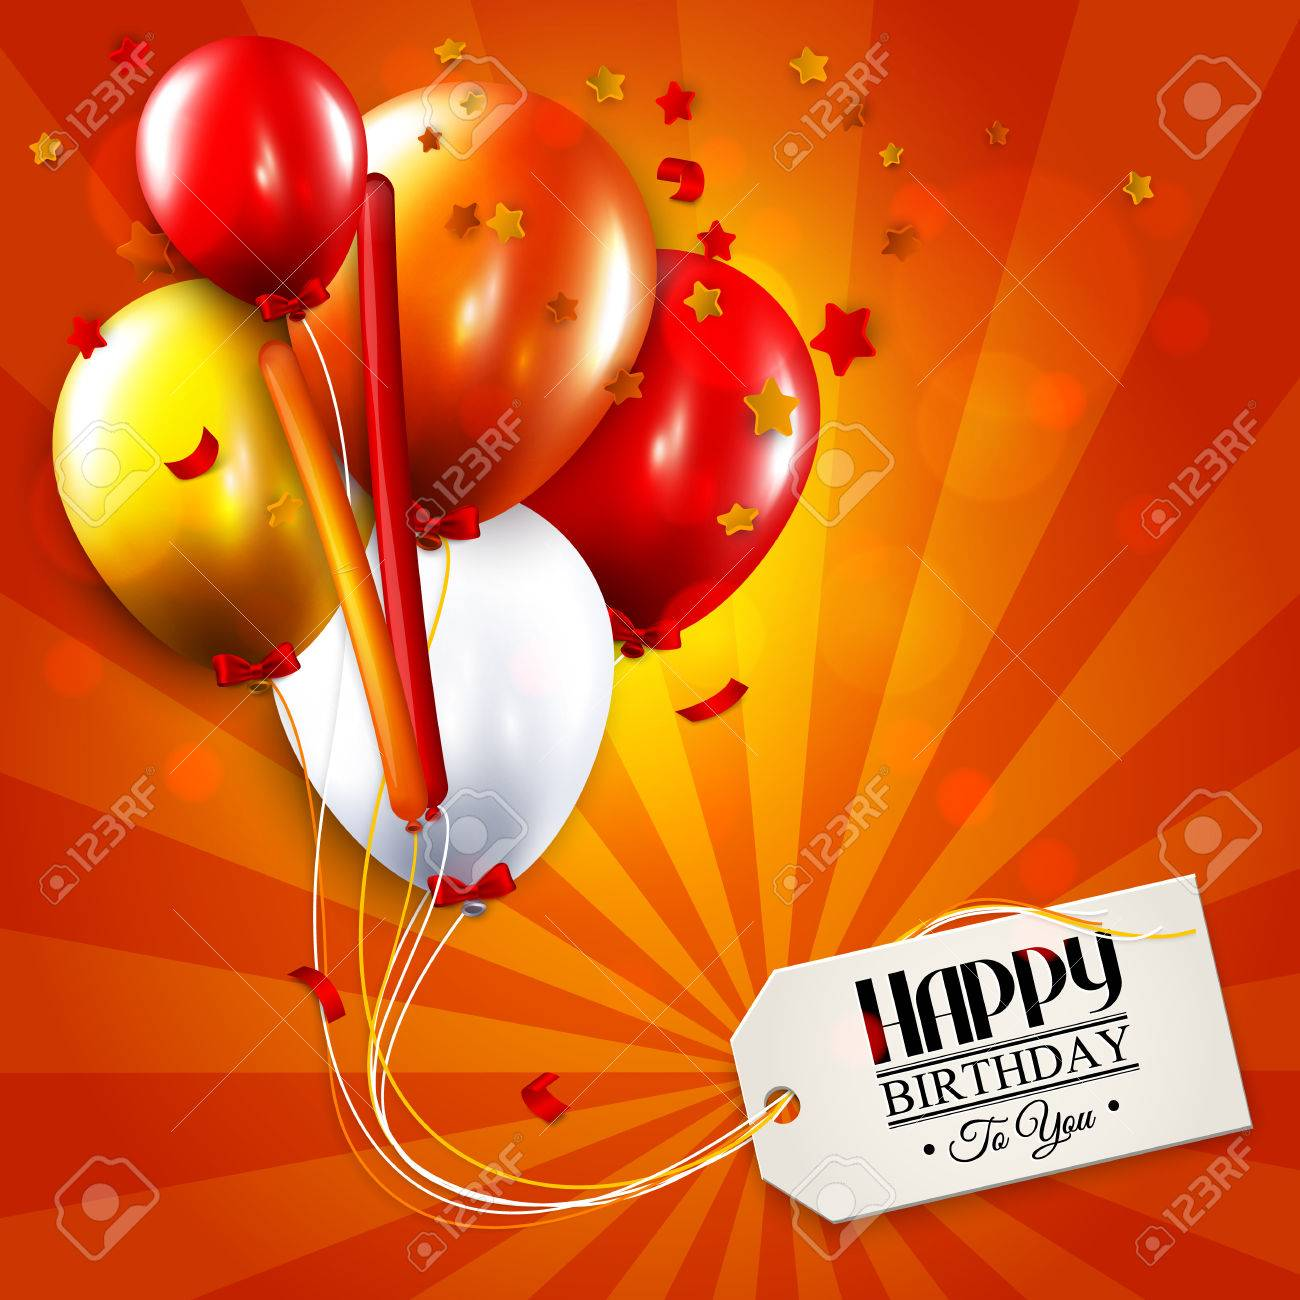 Vector birthday card with balloons, confetti and tag for your text. - 39785043